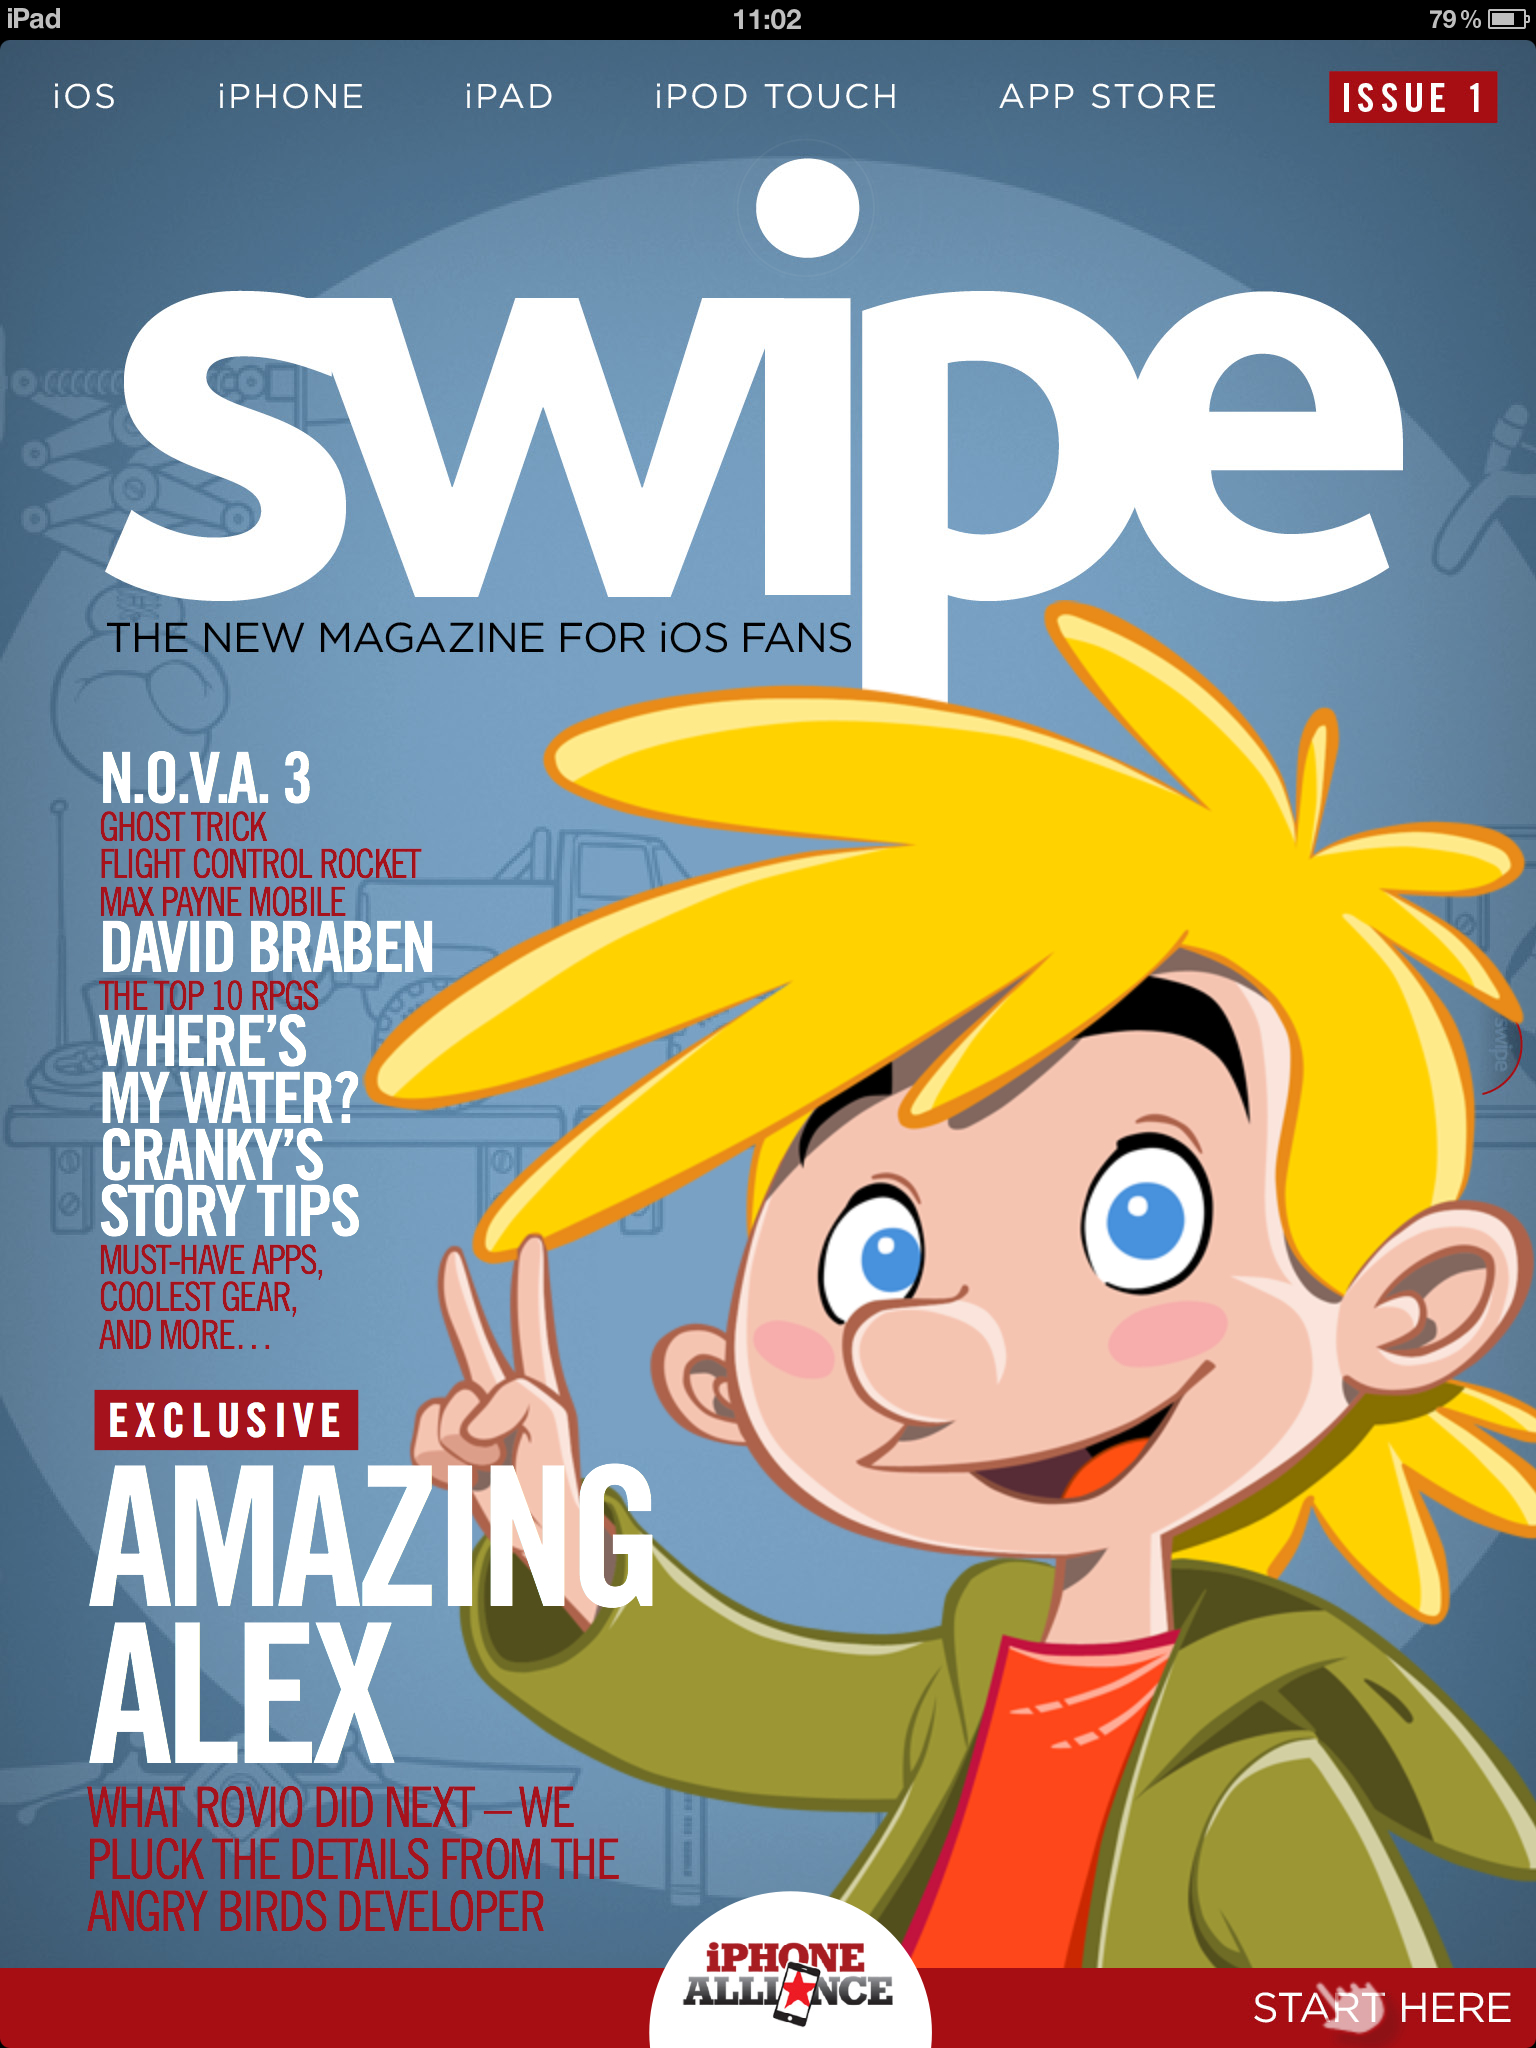 Steel Media launches swipe, the interactive magazine for iOS fans